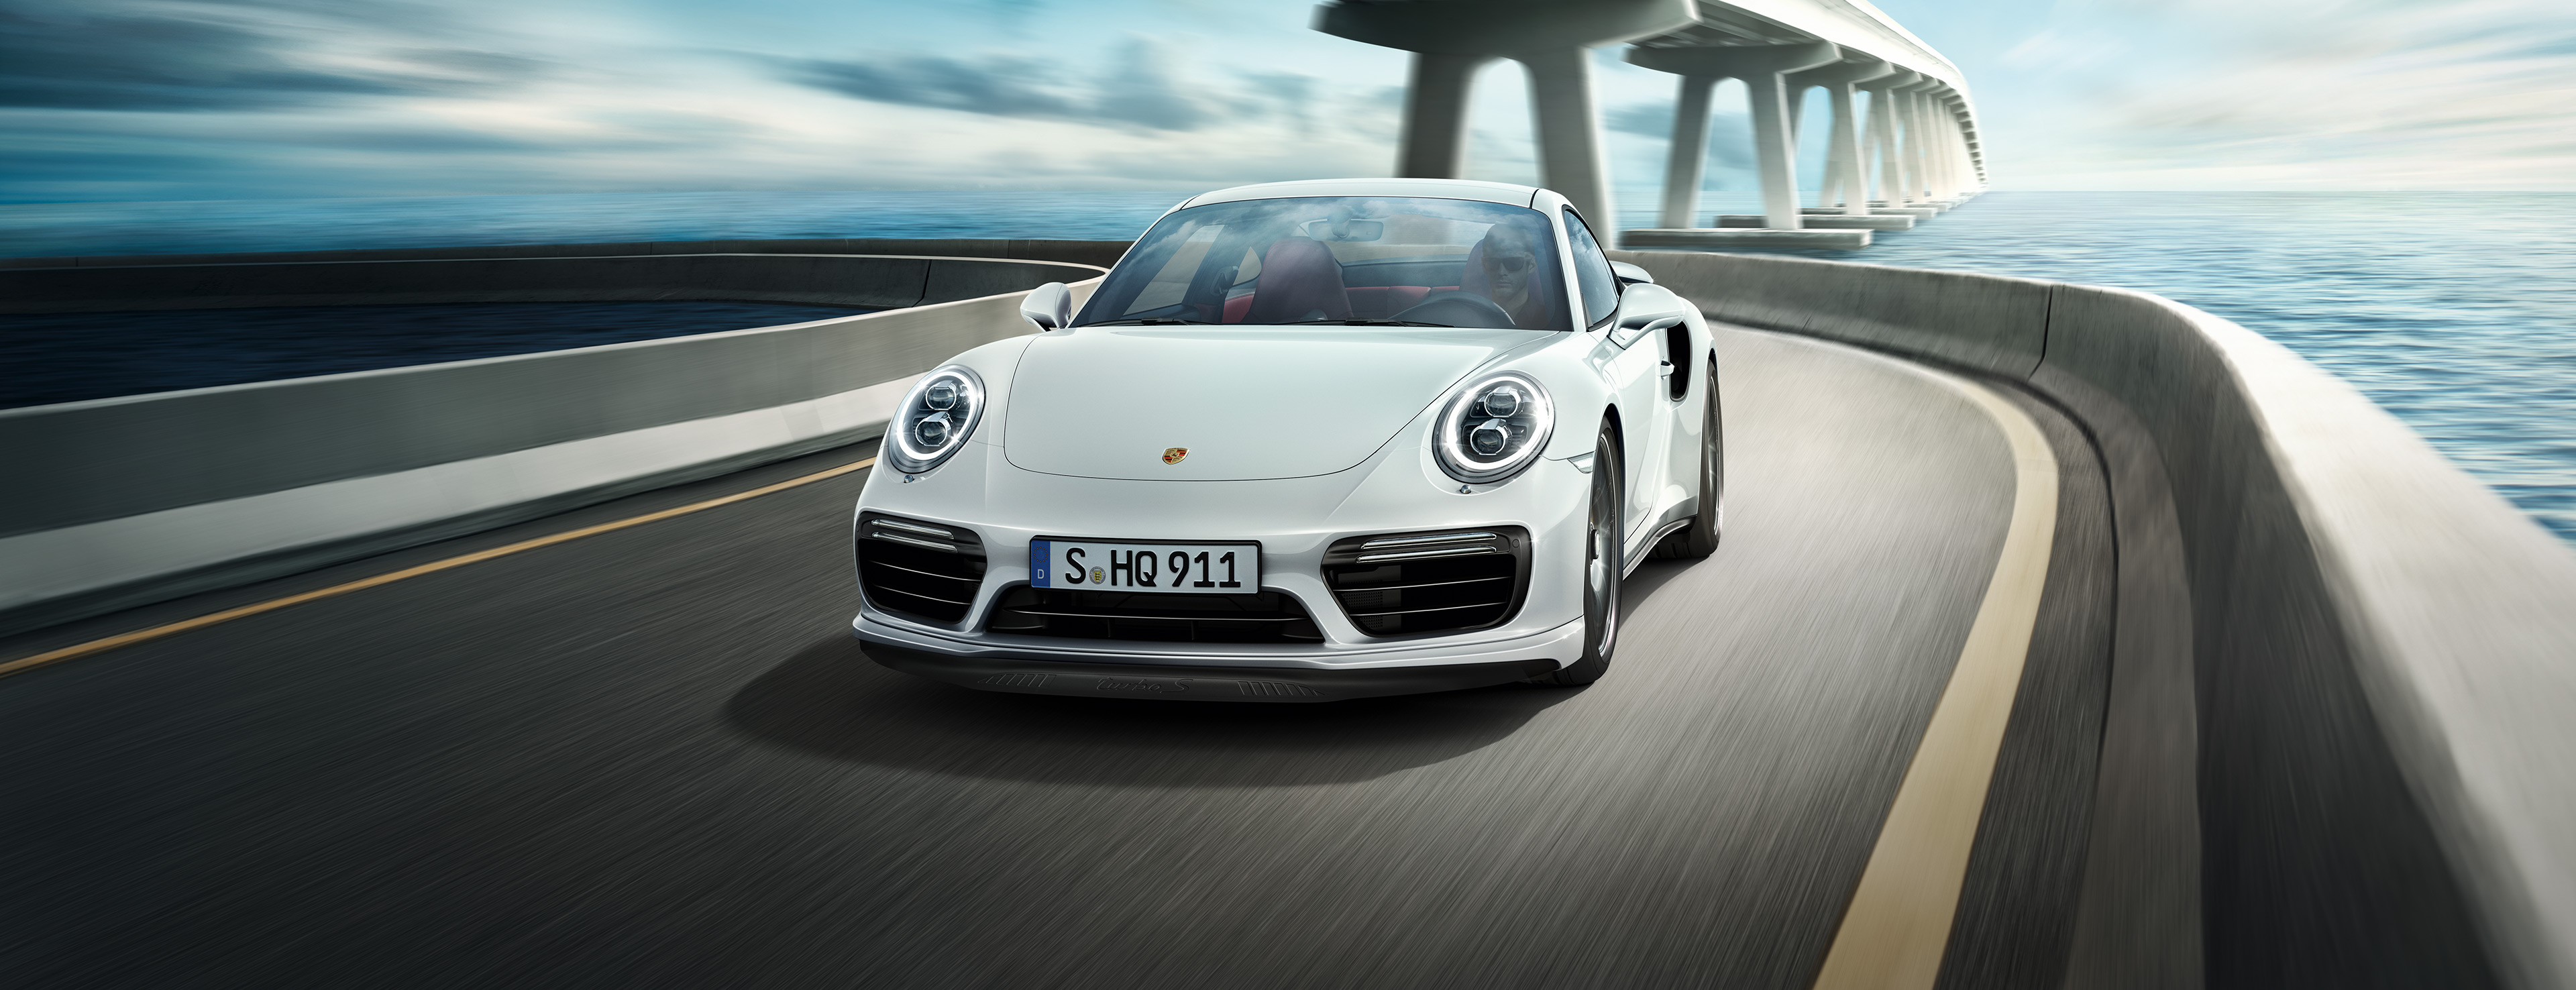 porsche 911 turbo models porsche usa. Black Bedroom Furniture Sets. Home Design Ideas